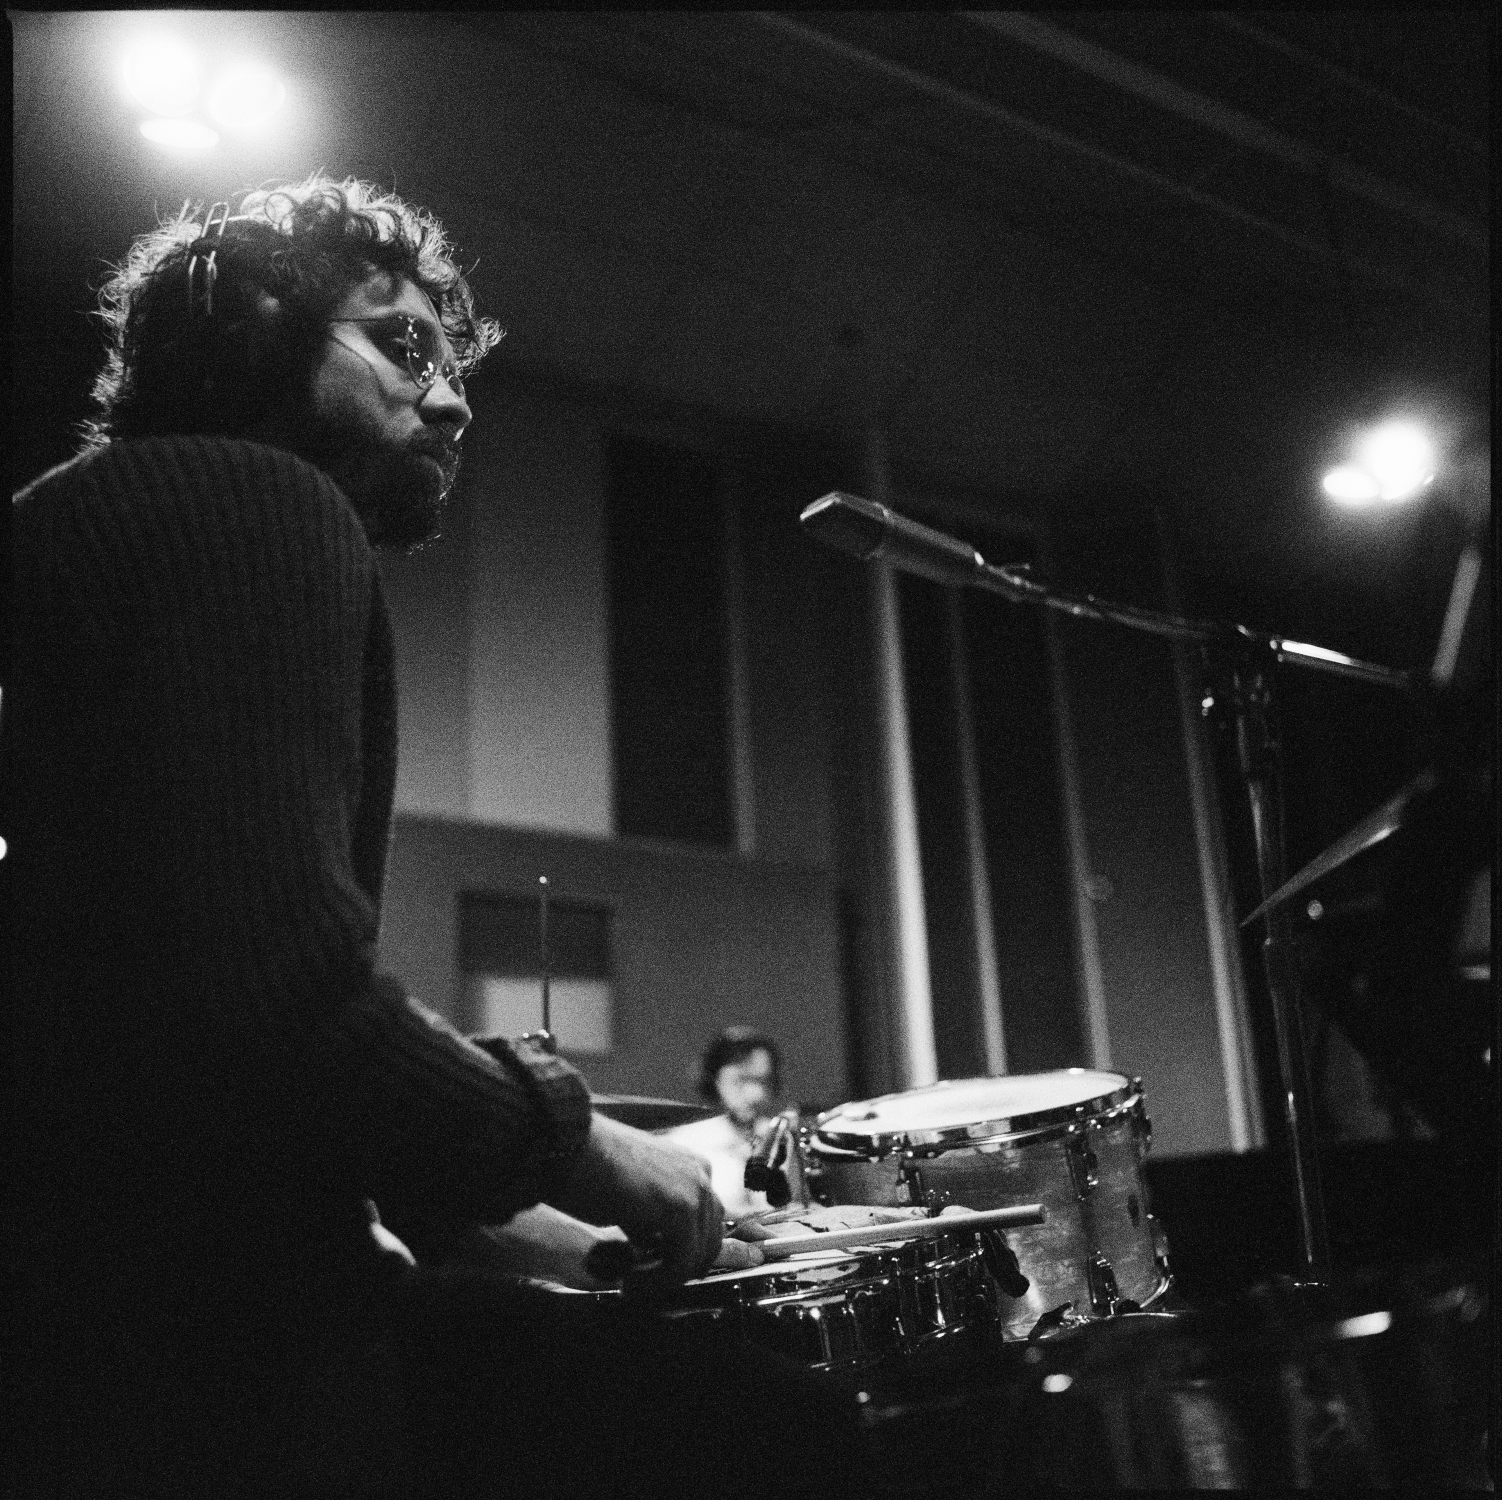 Dom Billett playing drums for Erin Rae at Sam Phillips Recording in Memphis, TN